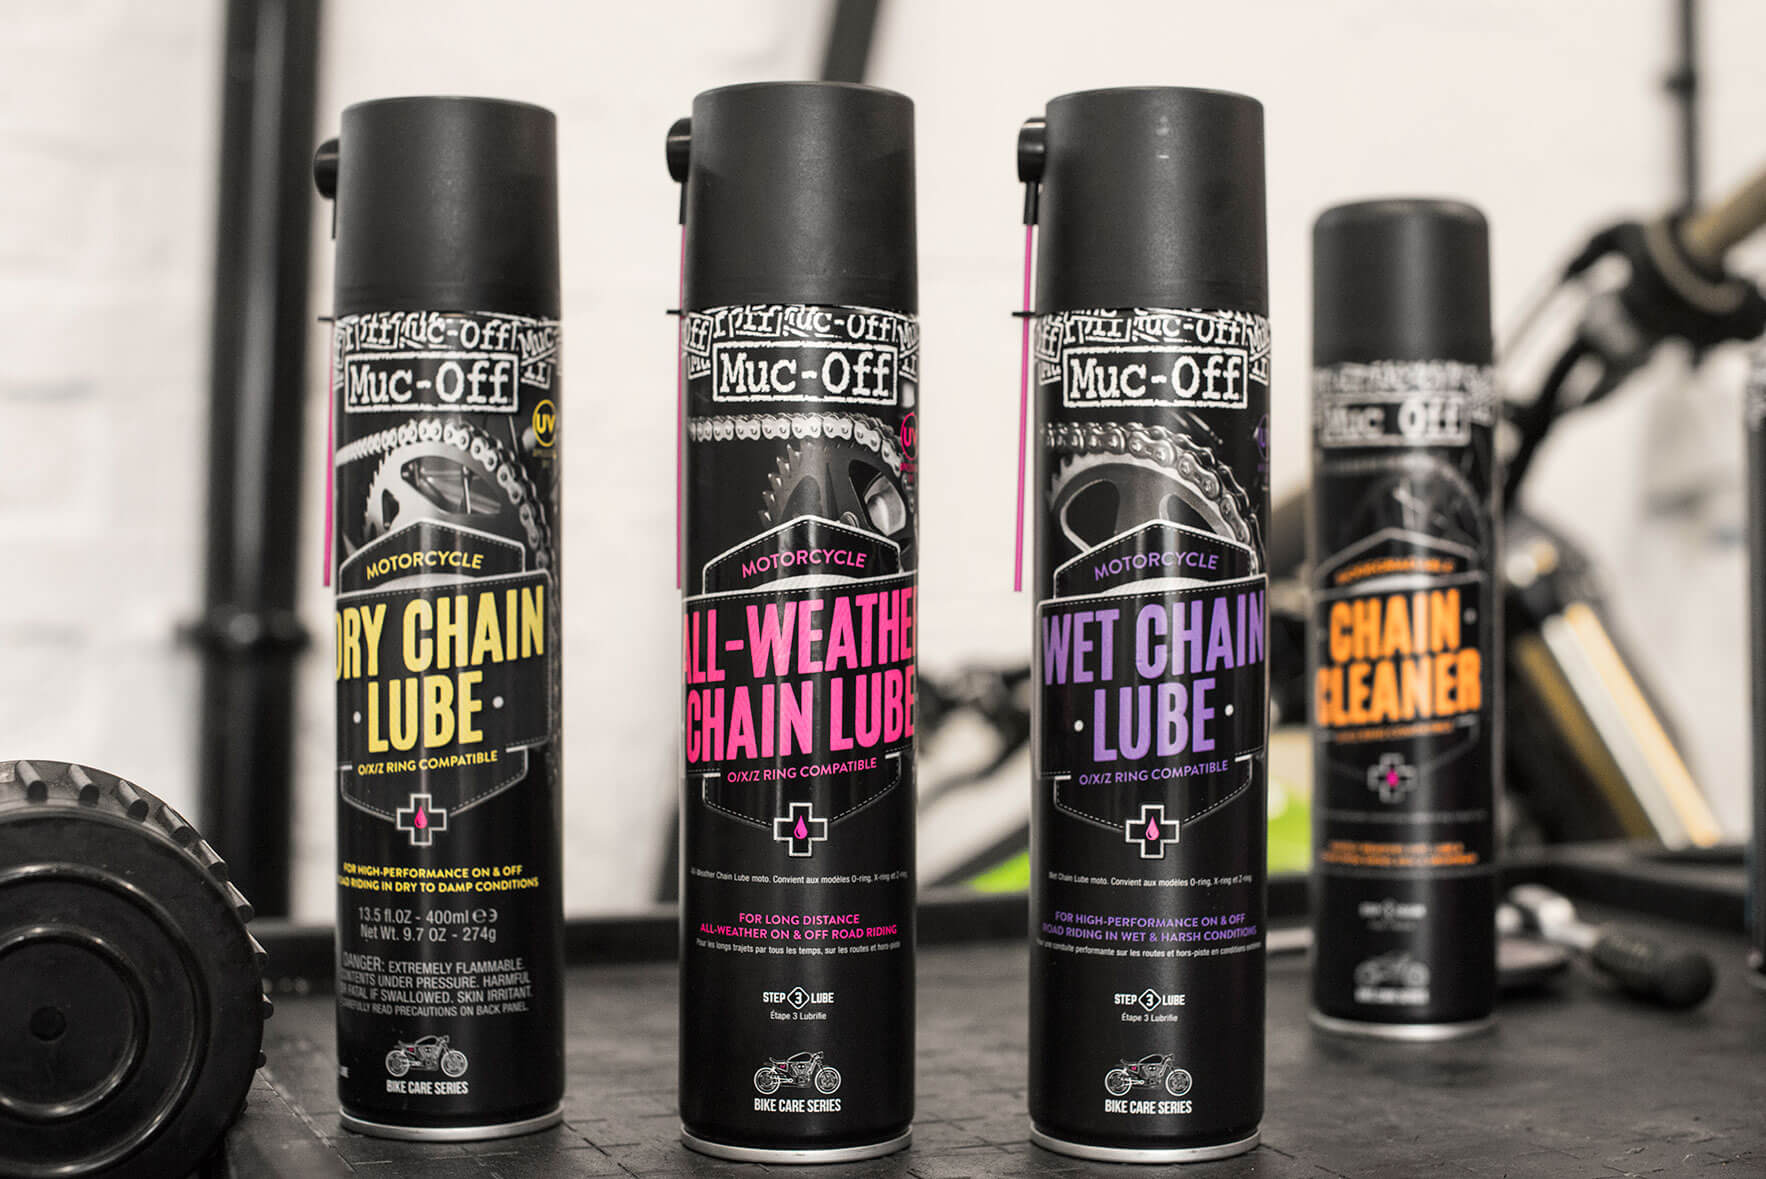 Dry chain lube can, All-Weather Chain Lube can, Wet Chain Lube can, Chain Cleaner can in mechanic setting